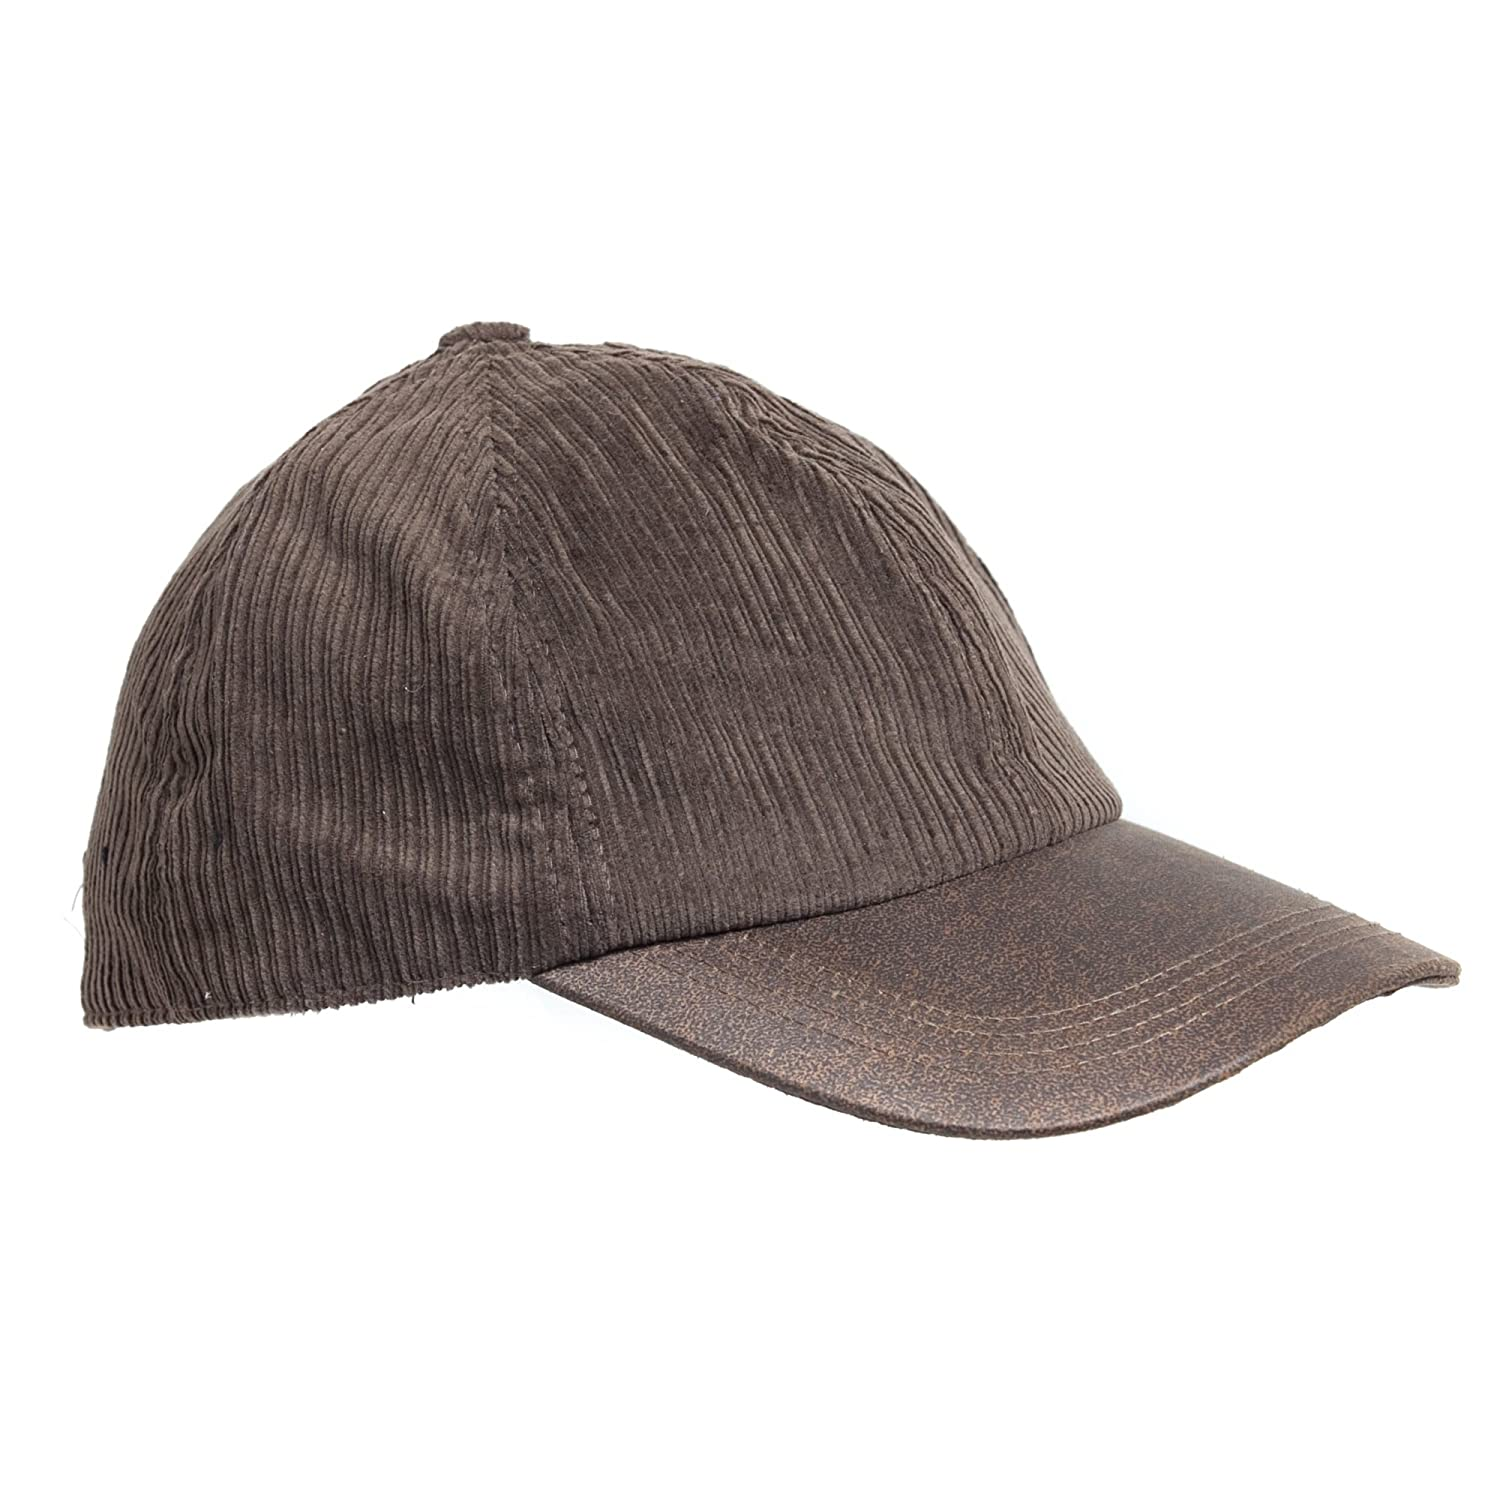 06d244f7640662 Brown Corduroy Baseball Cap w/ Brown Faux Leather Brim, Adjustable up to XL  at Amazon Men's Clothing store: